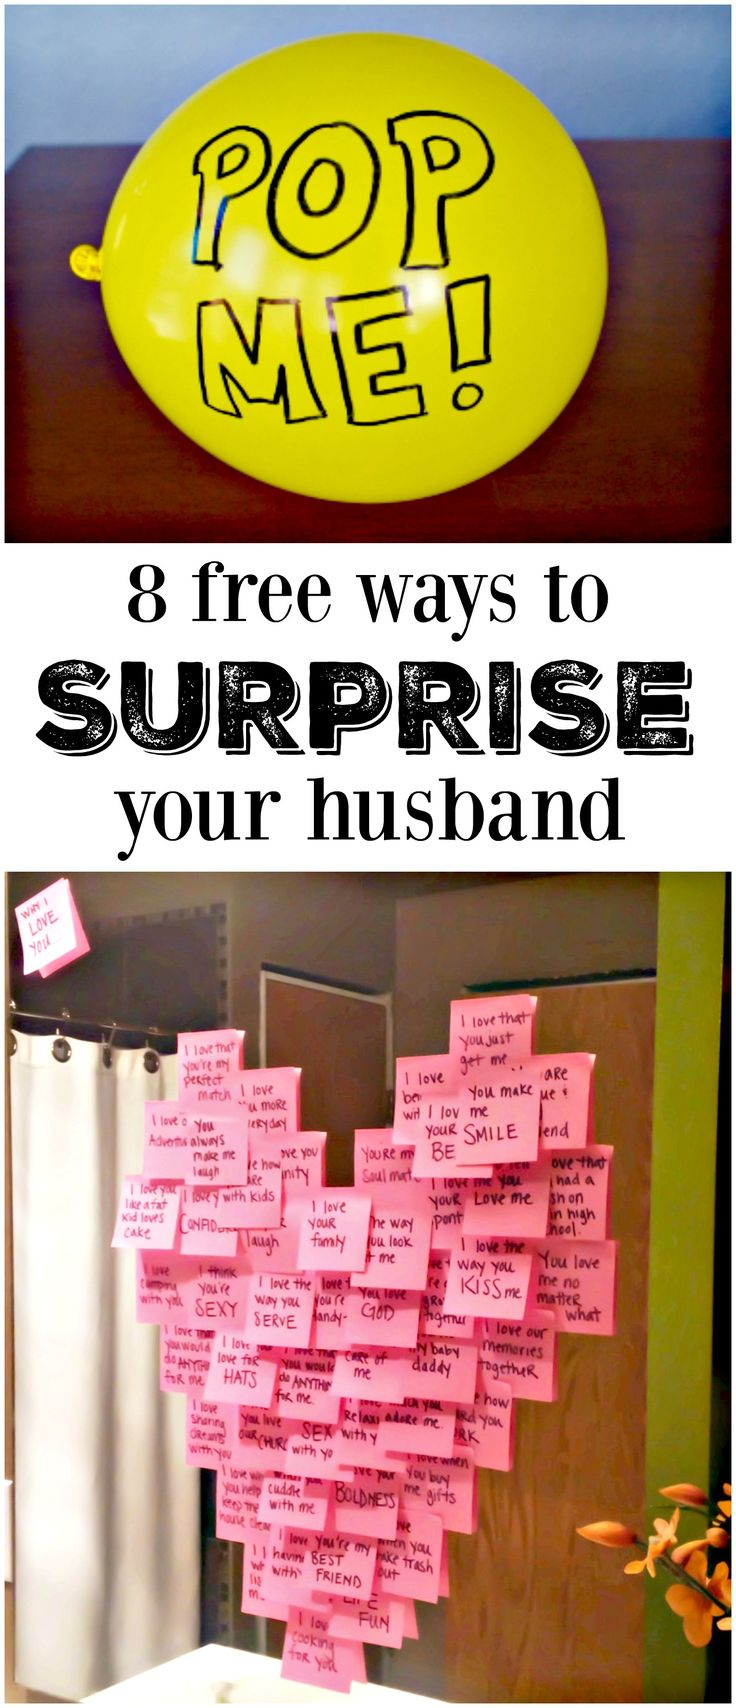 8 free ways to surprise your husband